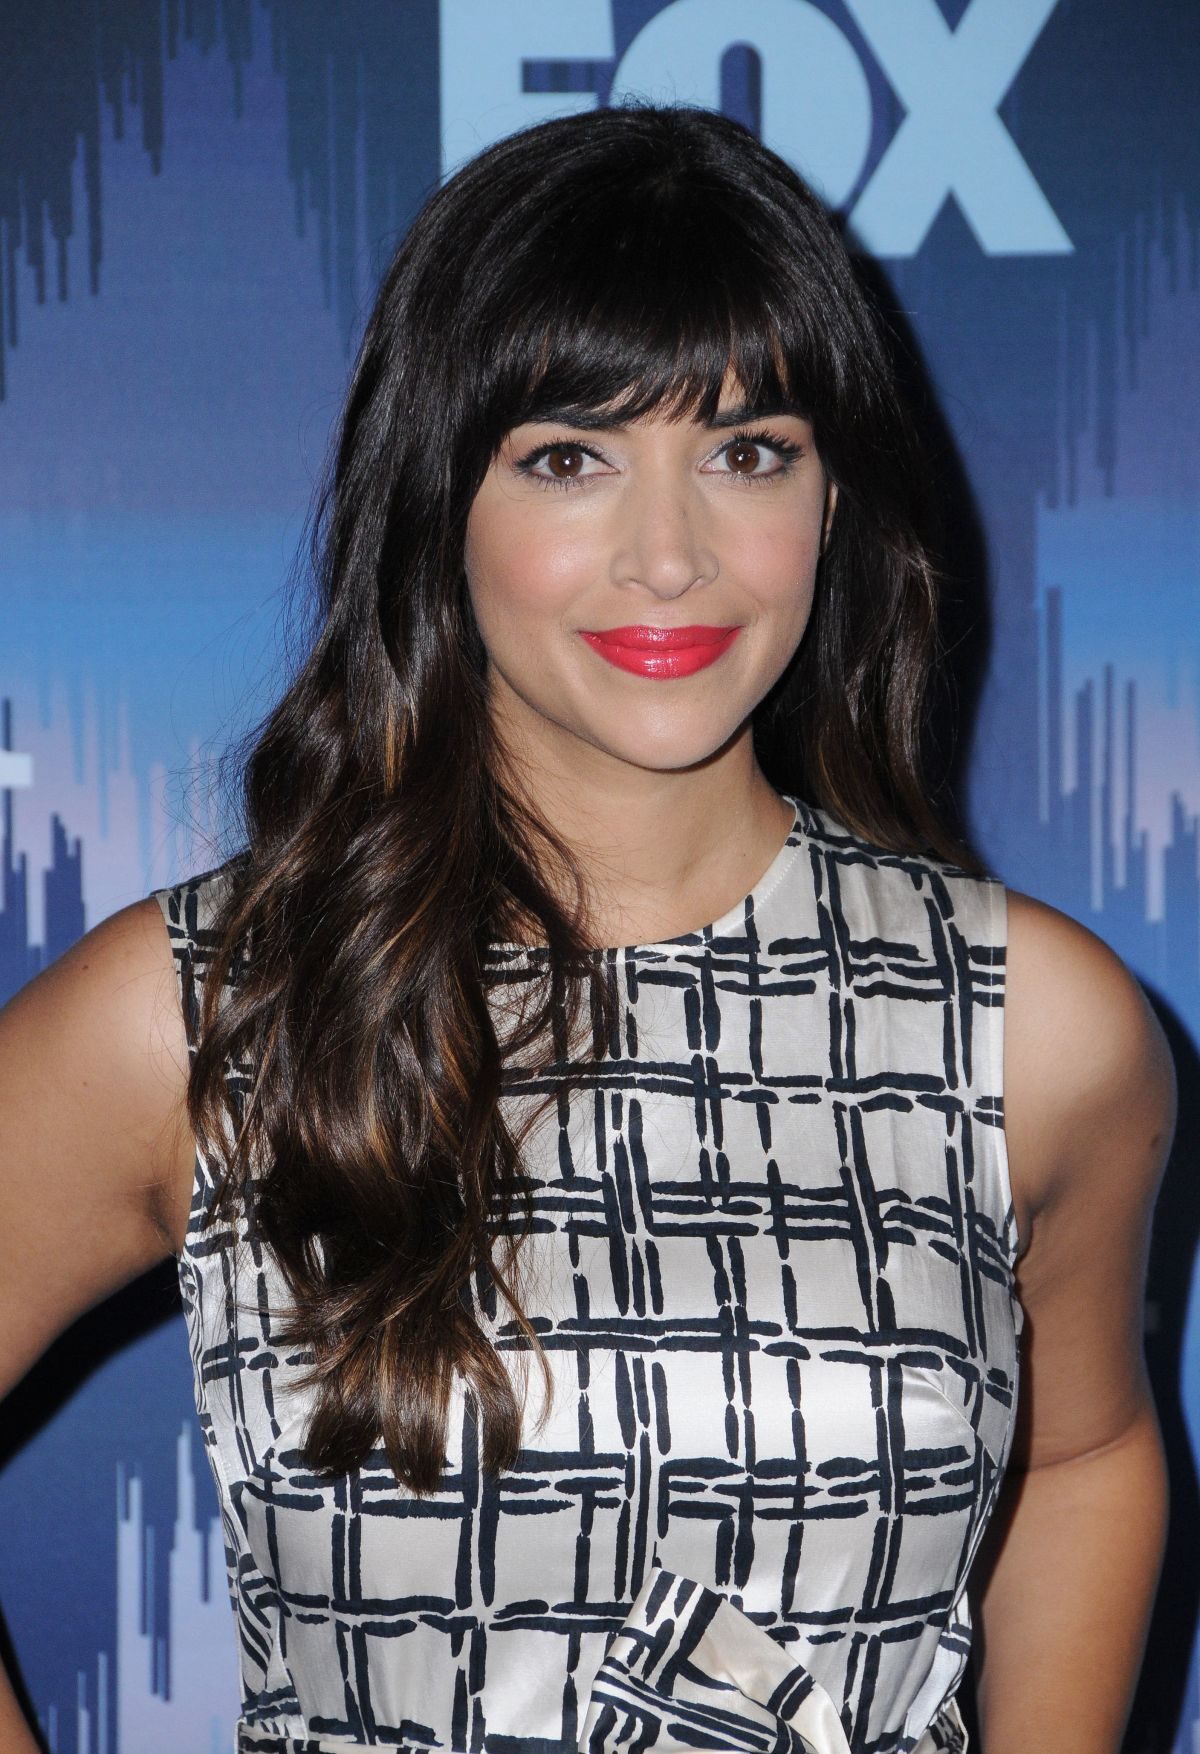 HANNAH SIMONE at Fox All-star Party at 2017 Winter TCA Tour in Pasadena 01/11/2017